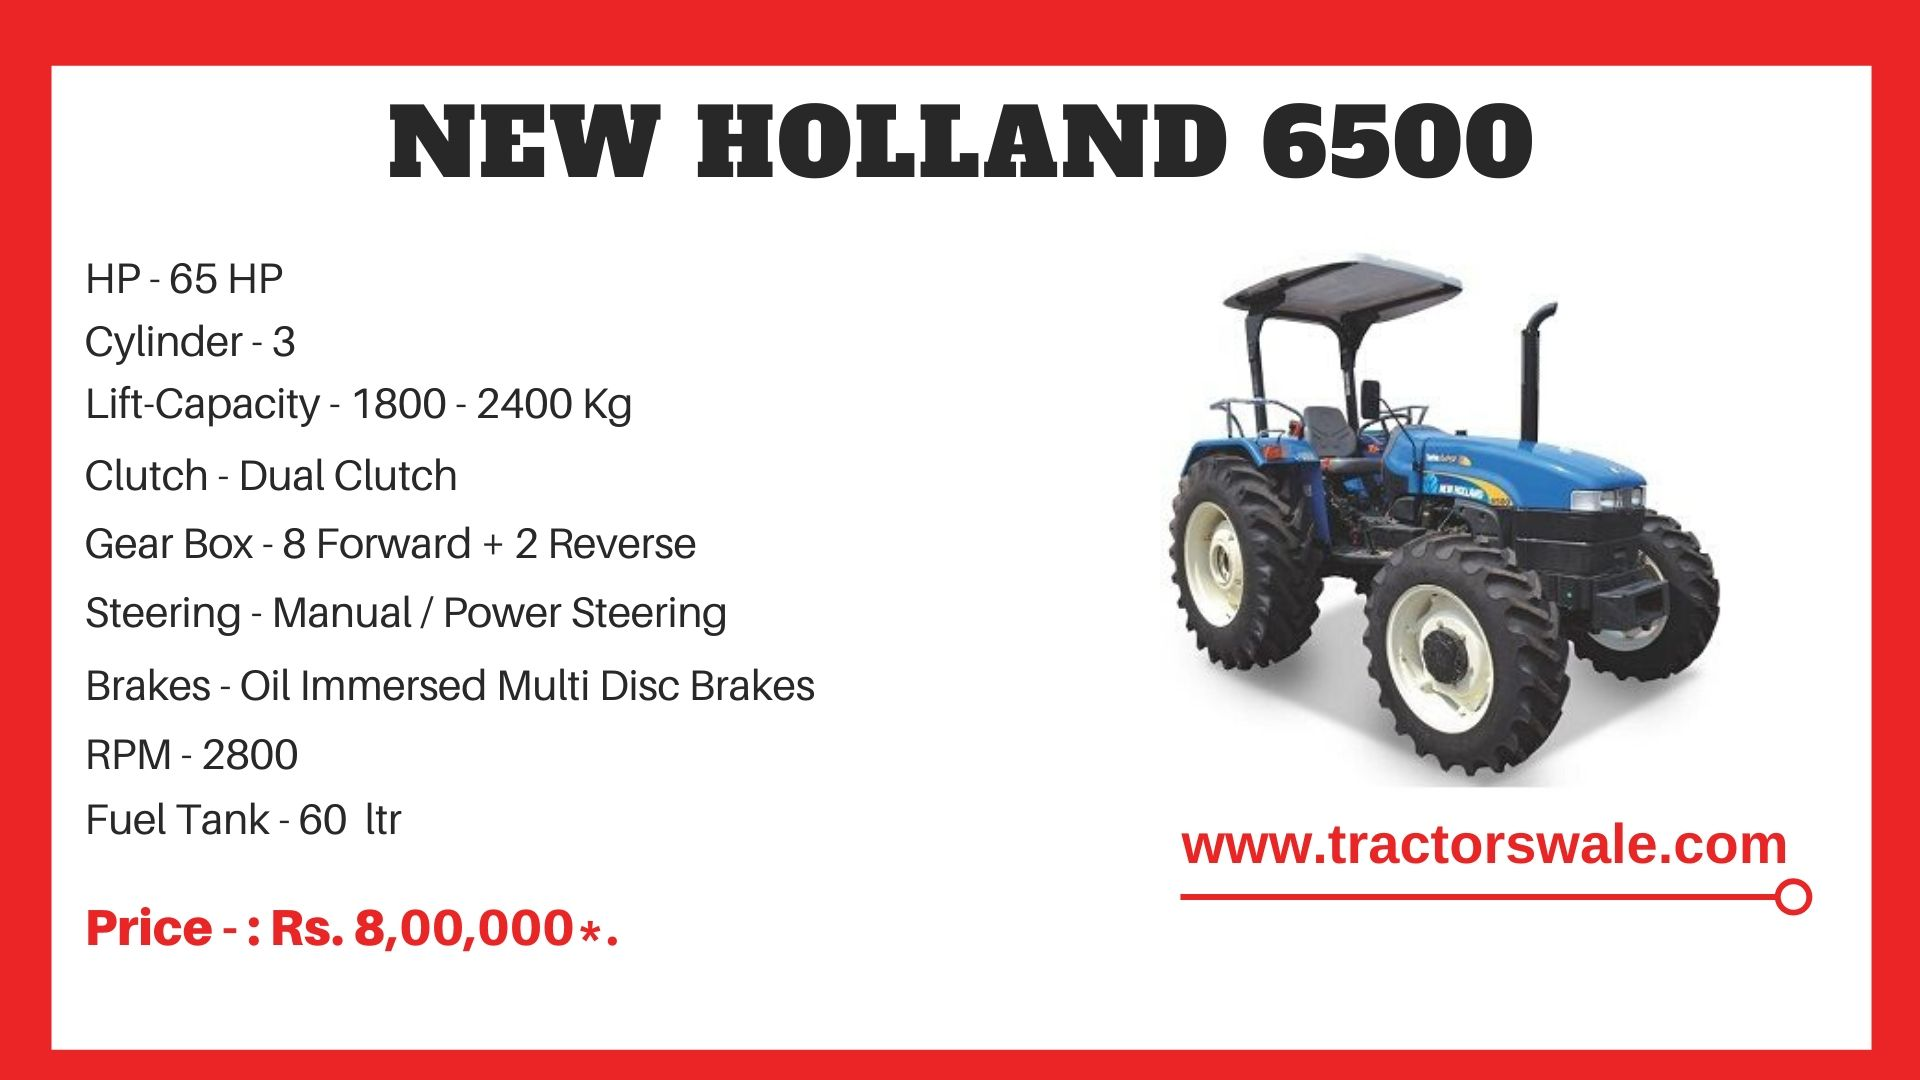 New Holland 6500 tractor price